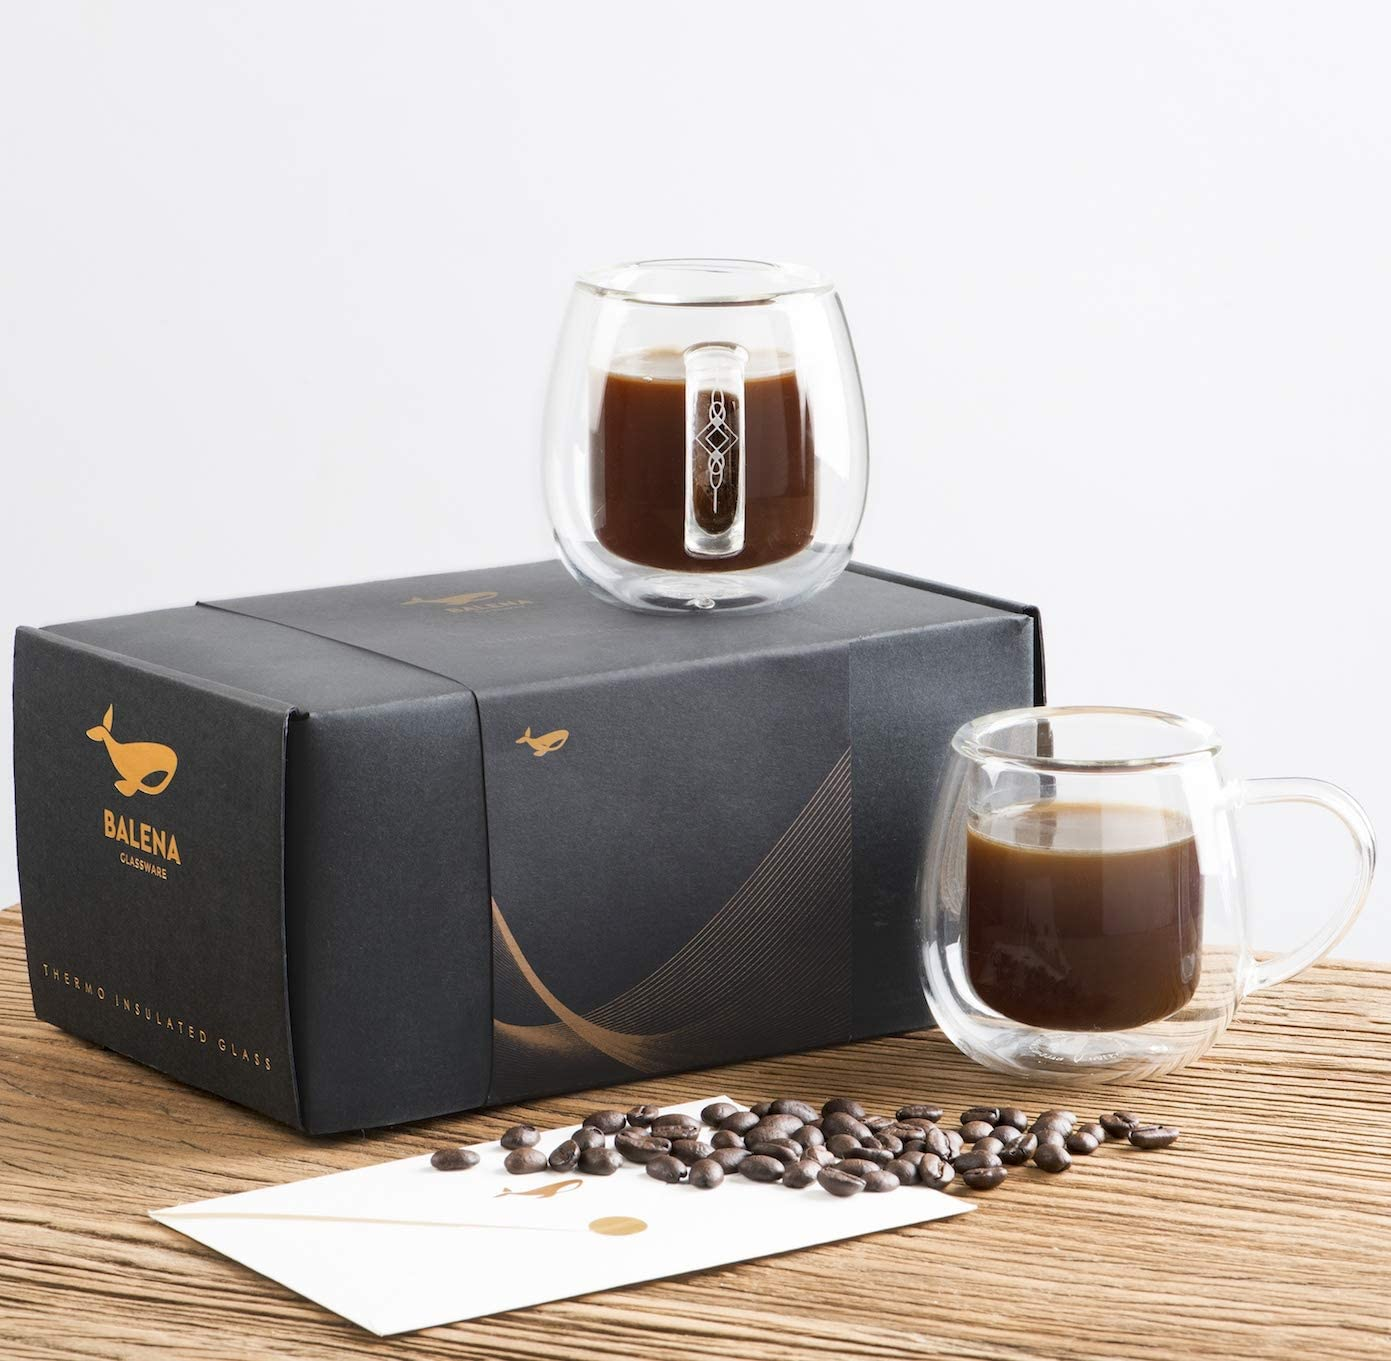 Double Walled Insulated Espresso Glass Mug Unique Gift For Latte Crystal Clear 12 ounce Hot Chocolate Tea Large 12 oz Coffee Mugs by Balena Beer Sets of 2